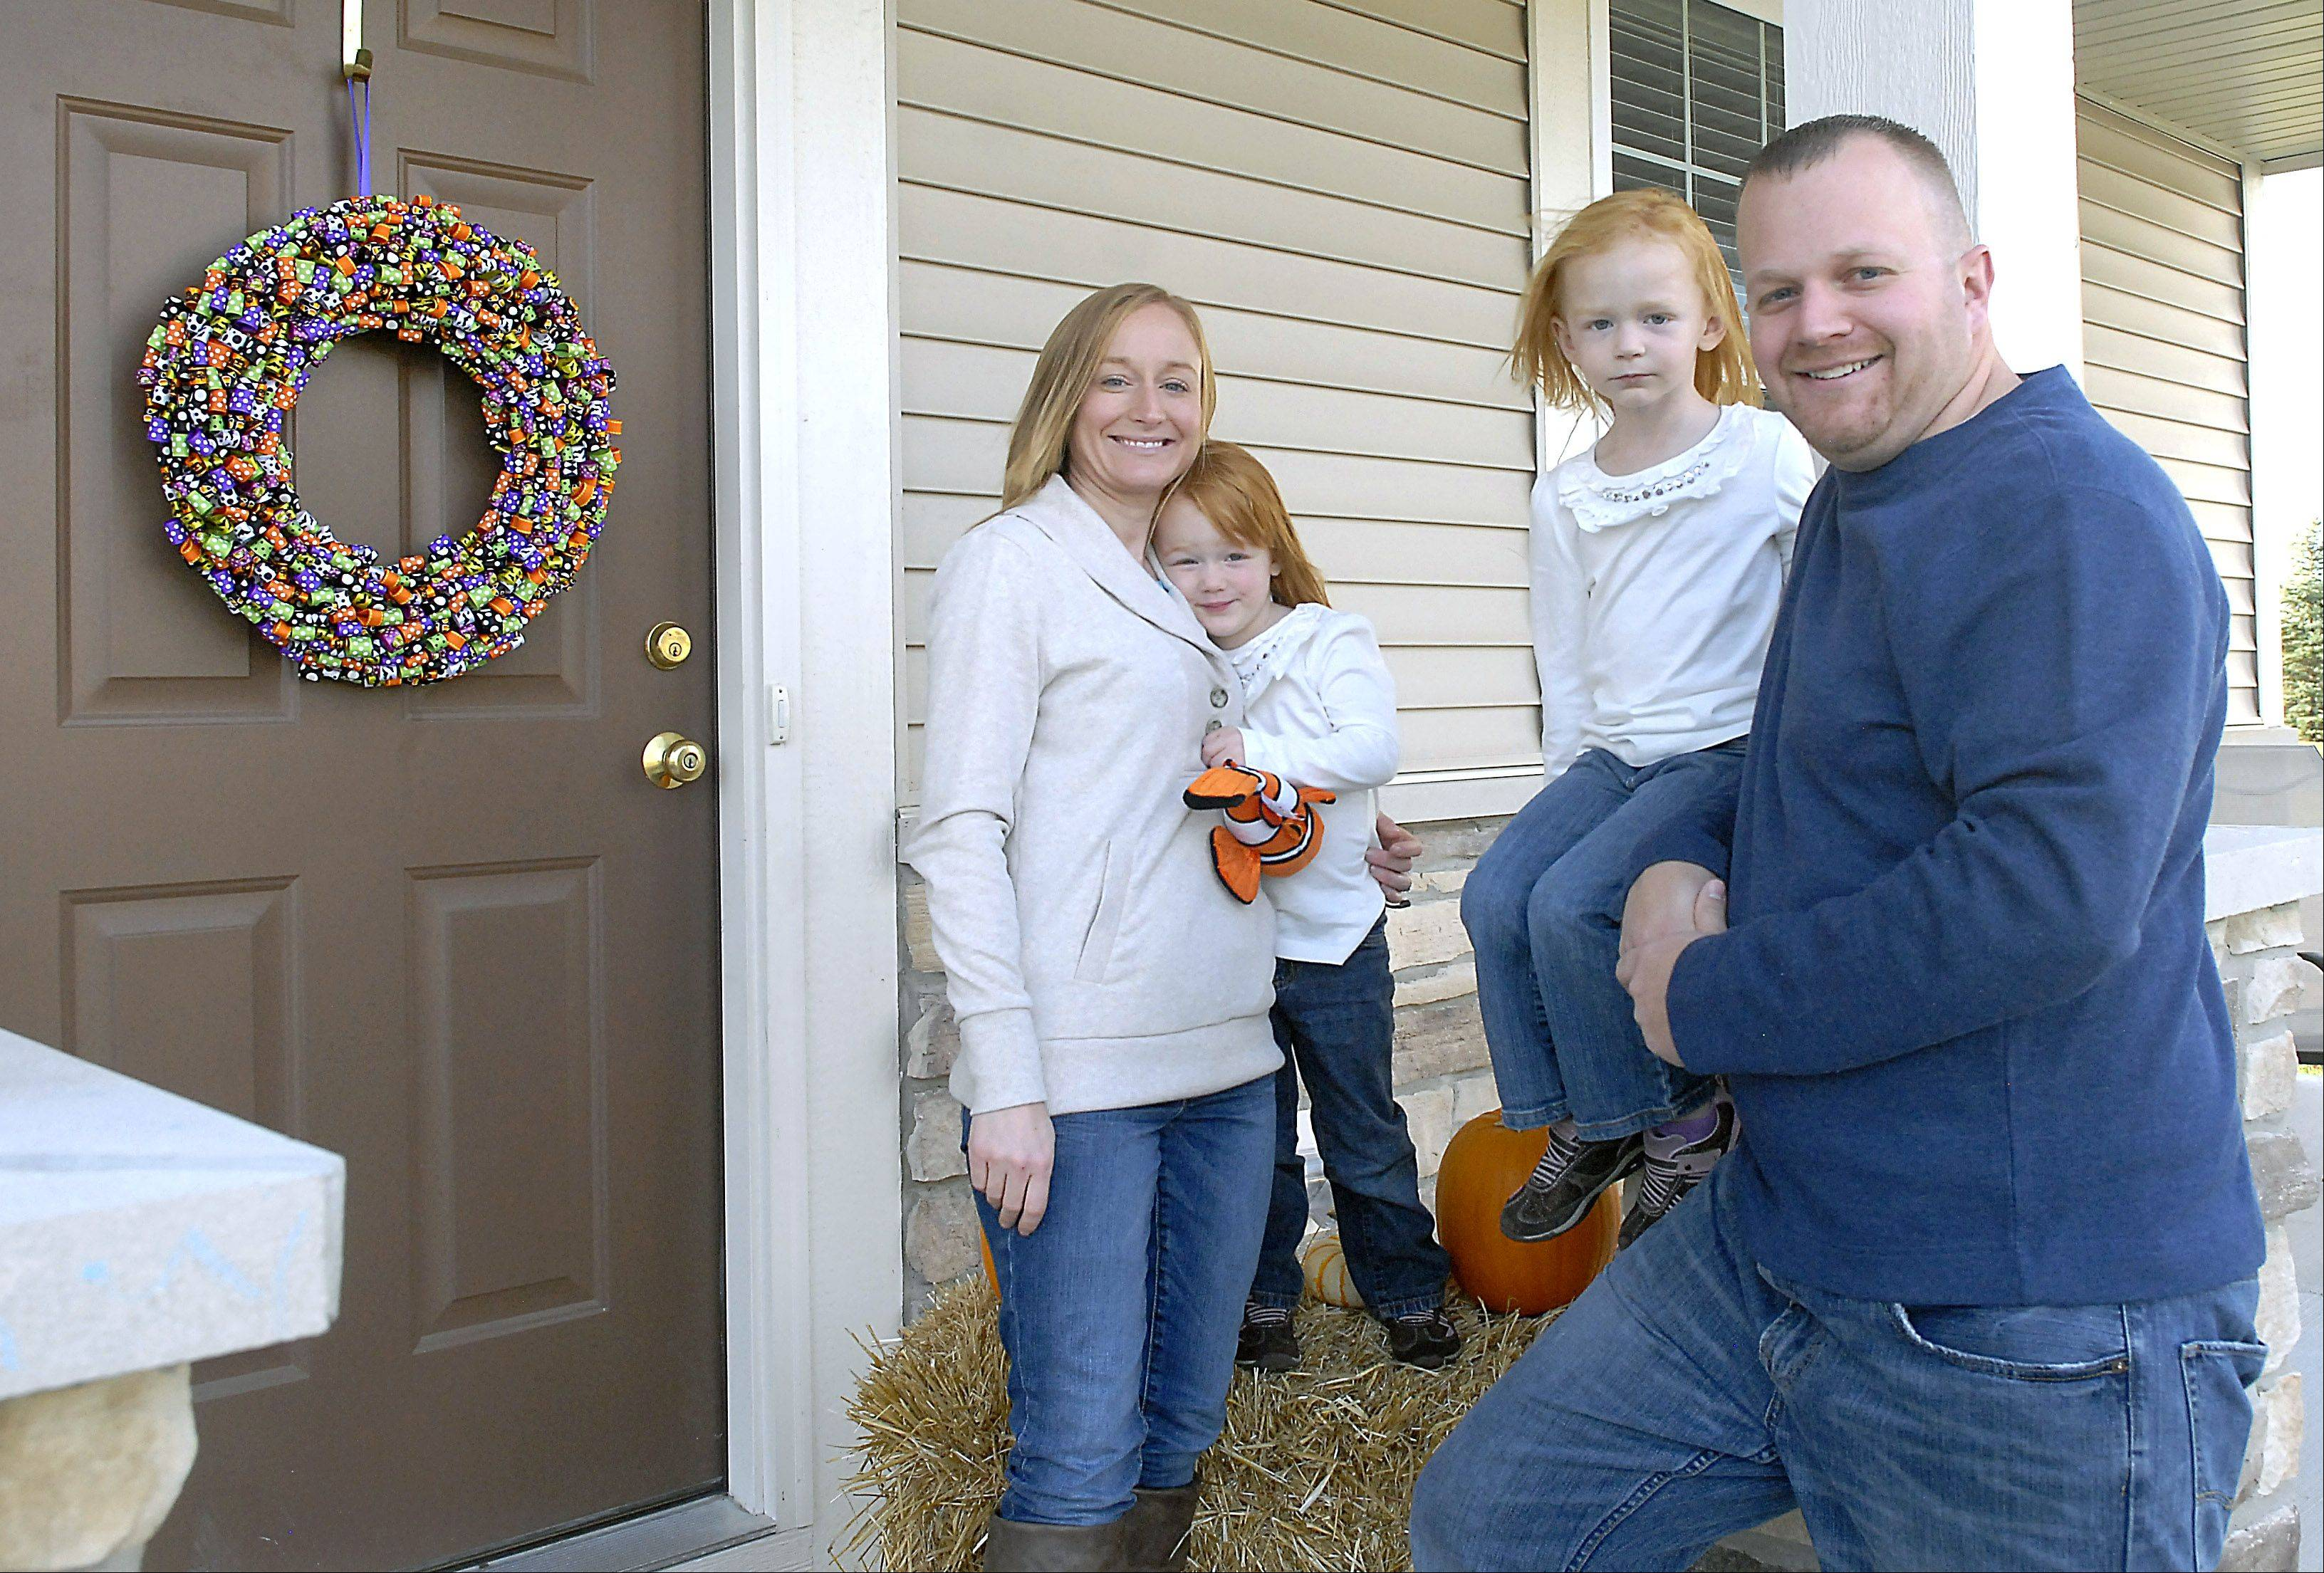 Kari and Todd Waller, with daughters Brooke, 2, and Madison, 4, recently moved to the Cambridge Lakes subdivision in Pingree Grove.